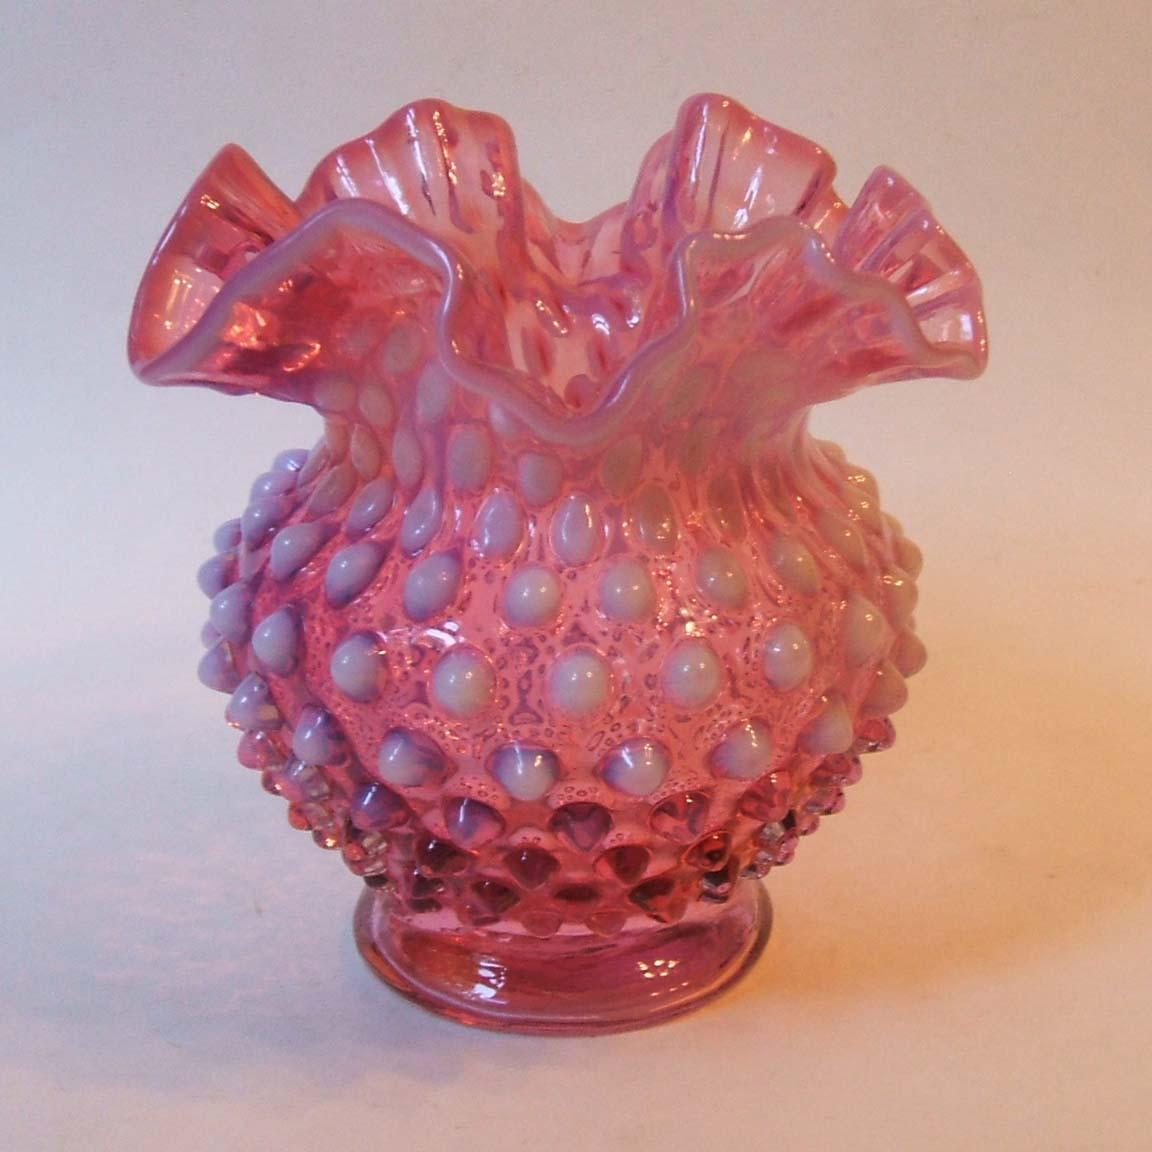 Vintage Fenton Glass Cranberry Opalescent Hobnail 4 5 Inch Double From Missingmemories On Ruby Lane